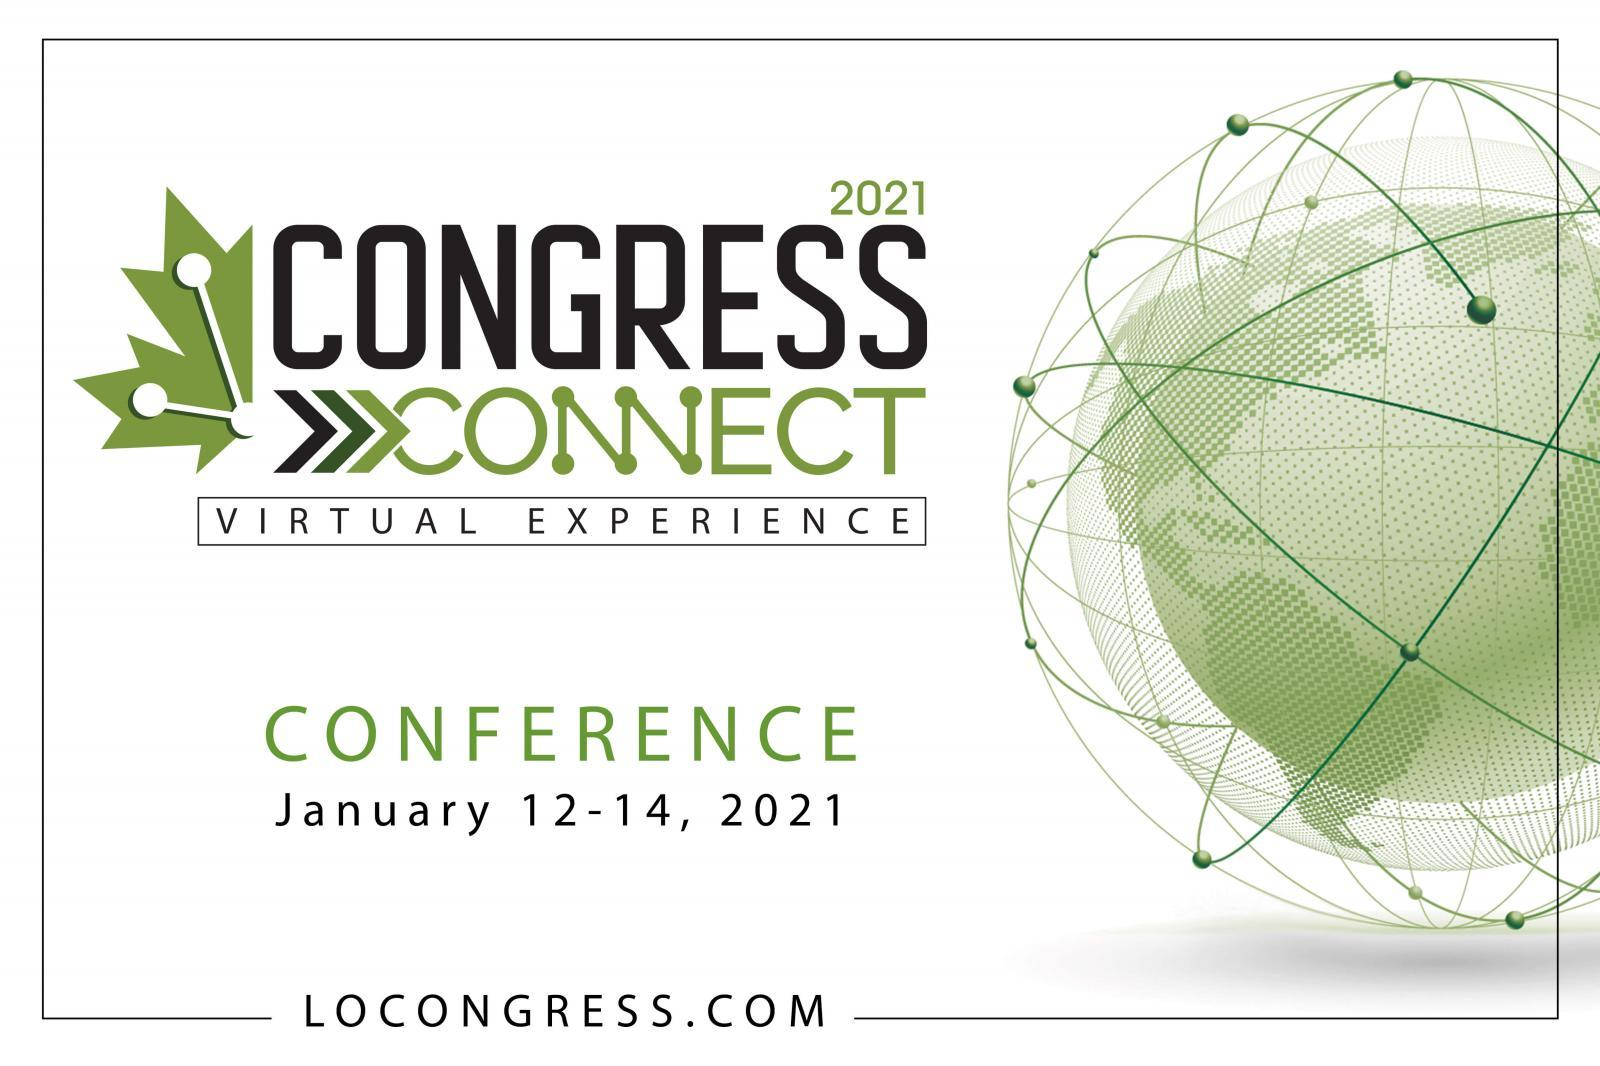 Congress Connect 2021 - Conference